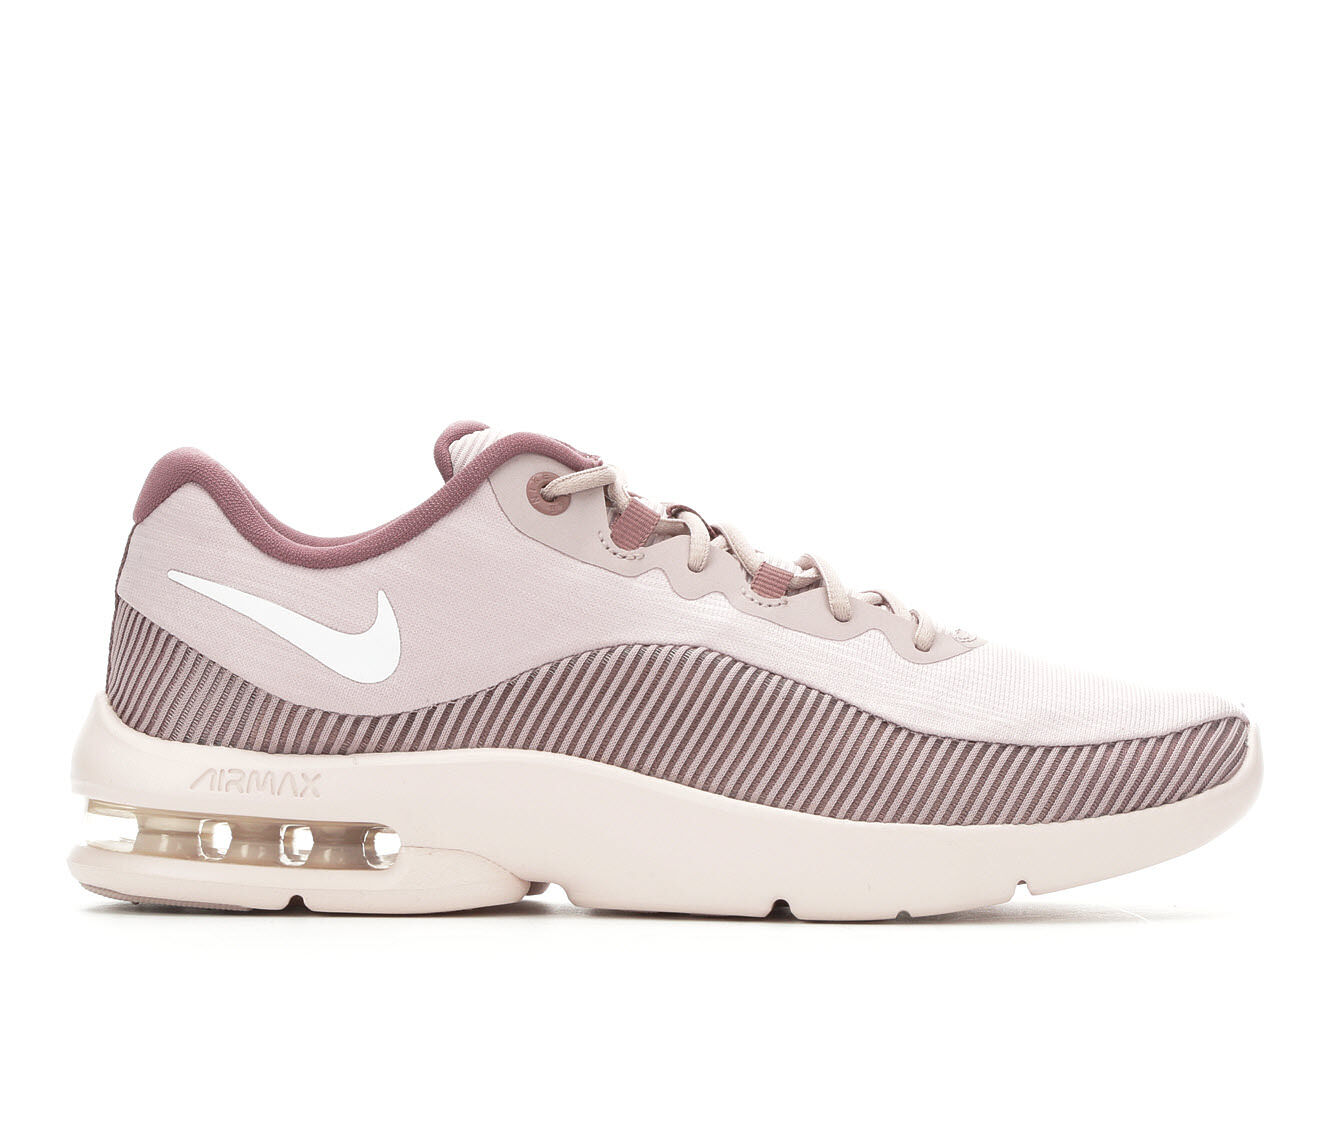 Products Hot Sale Women's Nike Air Max Advantage 2 Running Shoes Rose/Wht/Mauve